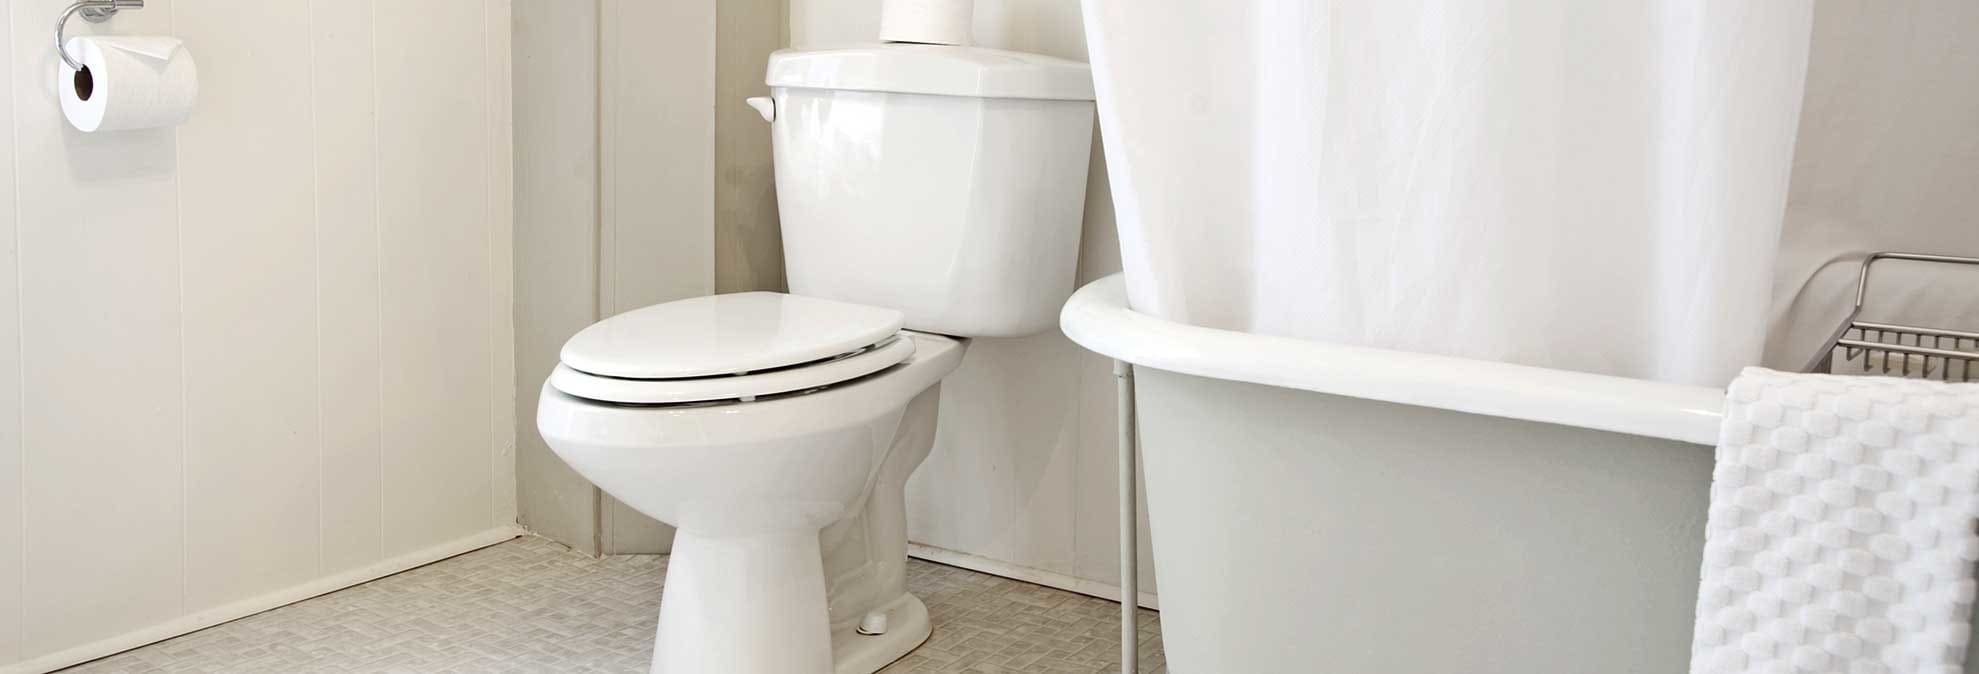 10 Inch Rough In Toilet Canada Find The Best Toilet For Your Bathroom Consumer Reports